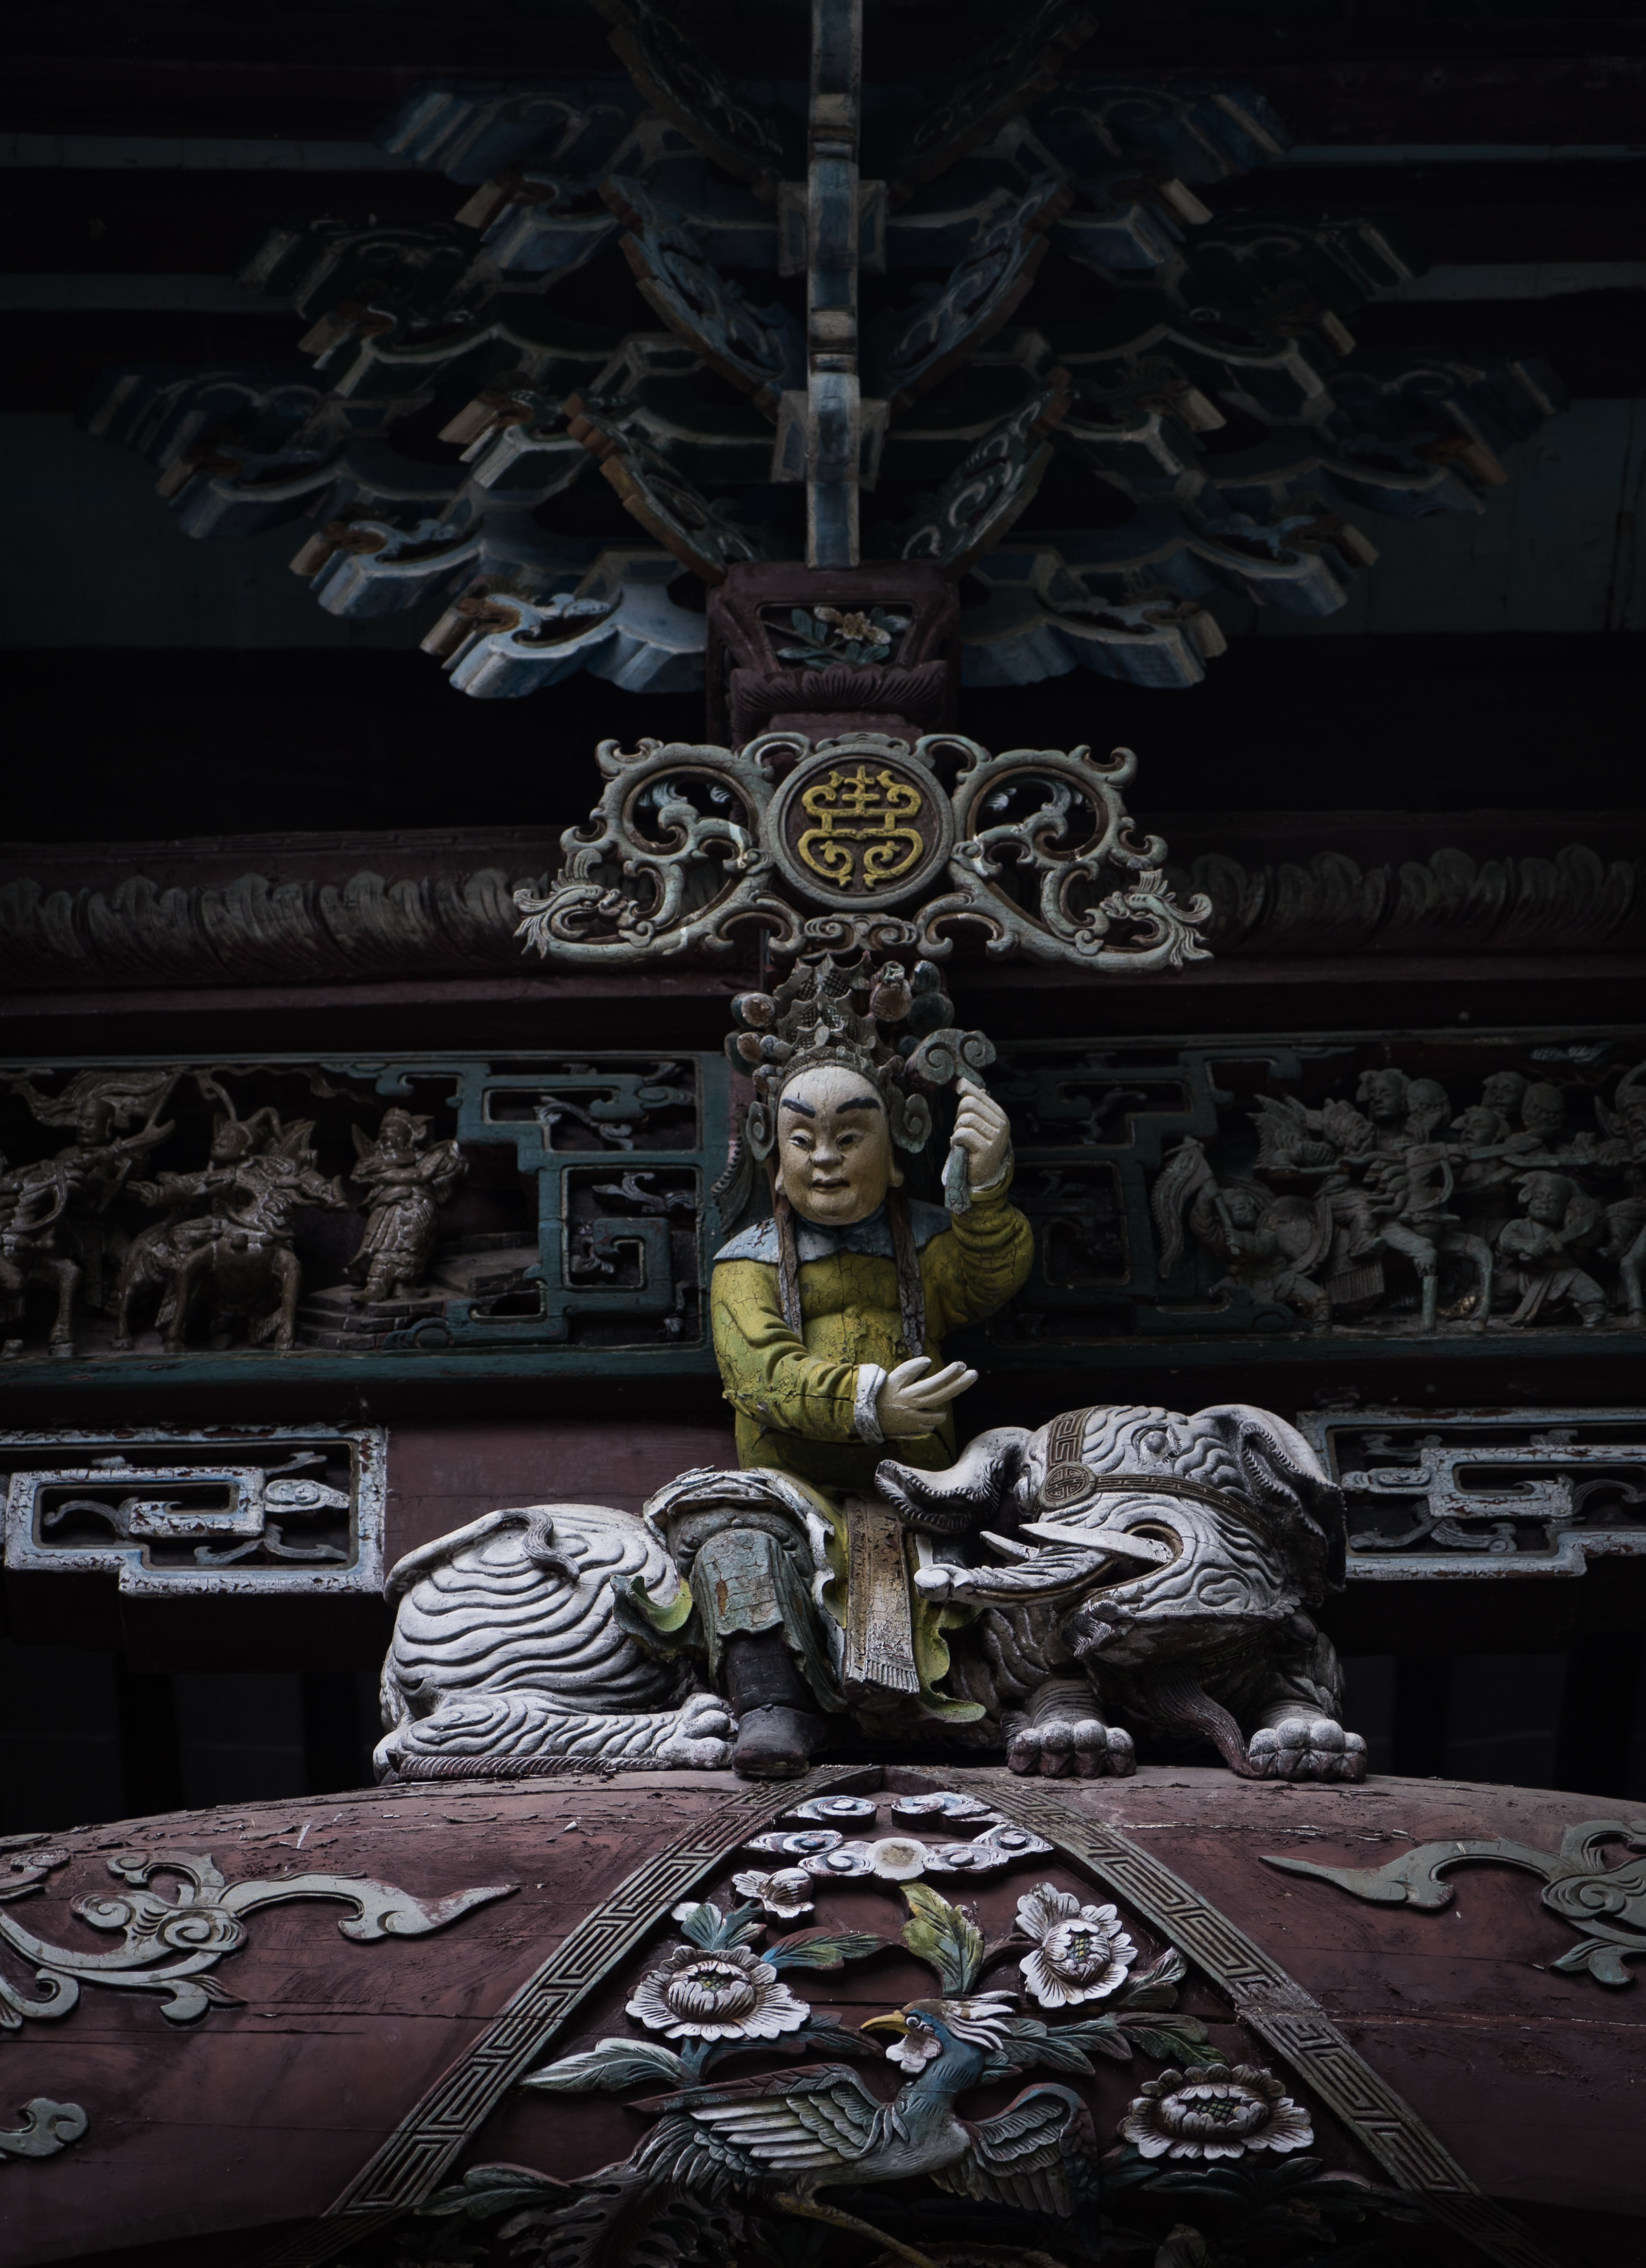 male deity sitting on top of mythical creature statue